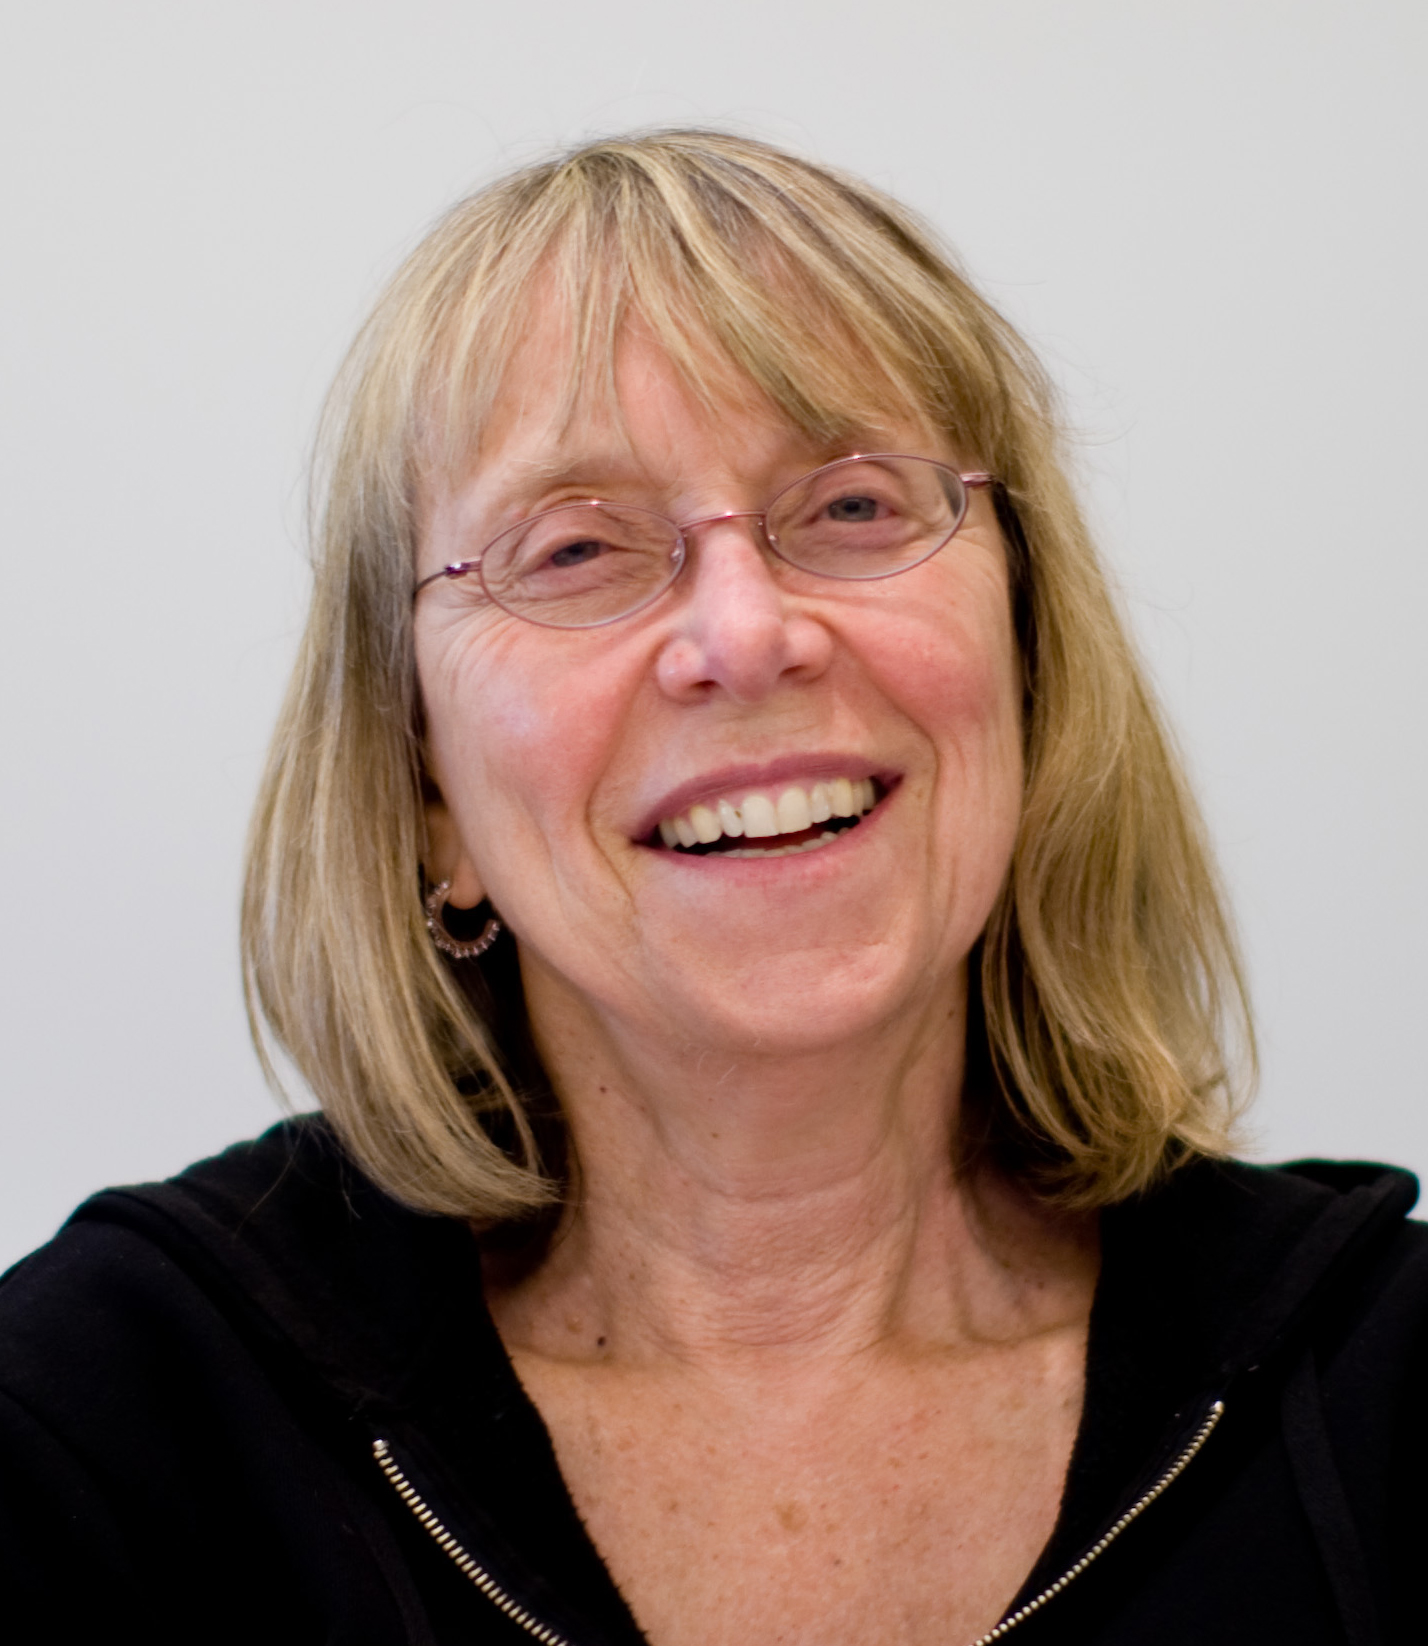 Esther Wojcicki - Wikipedia